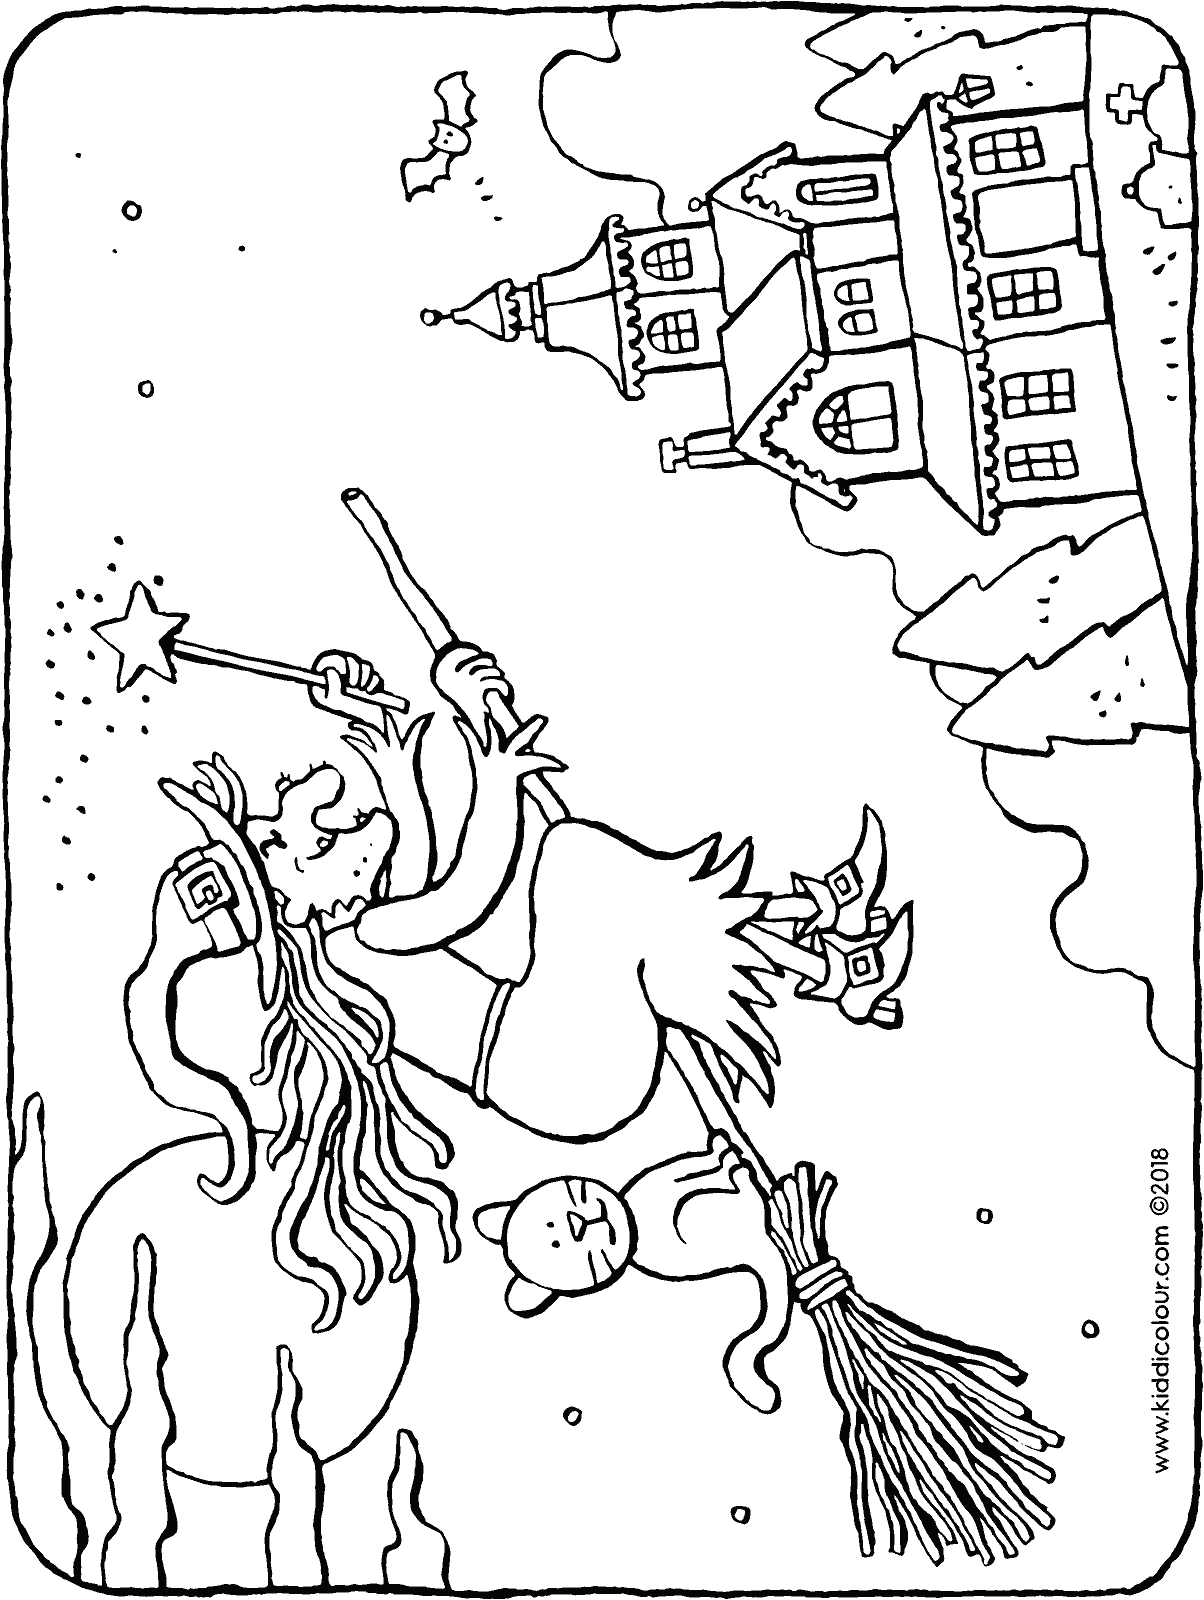 witch on broomstick colouring page drawing picture 01H